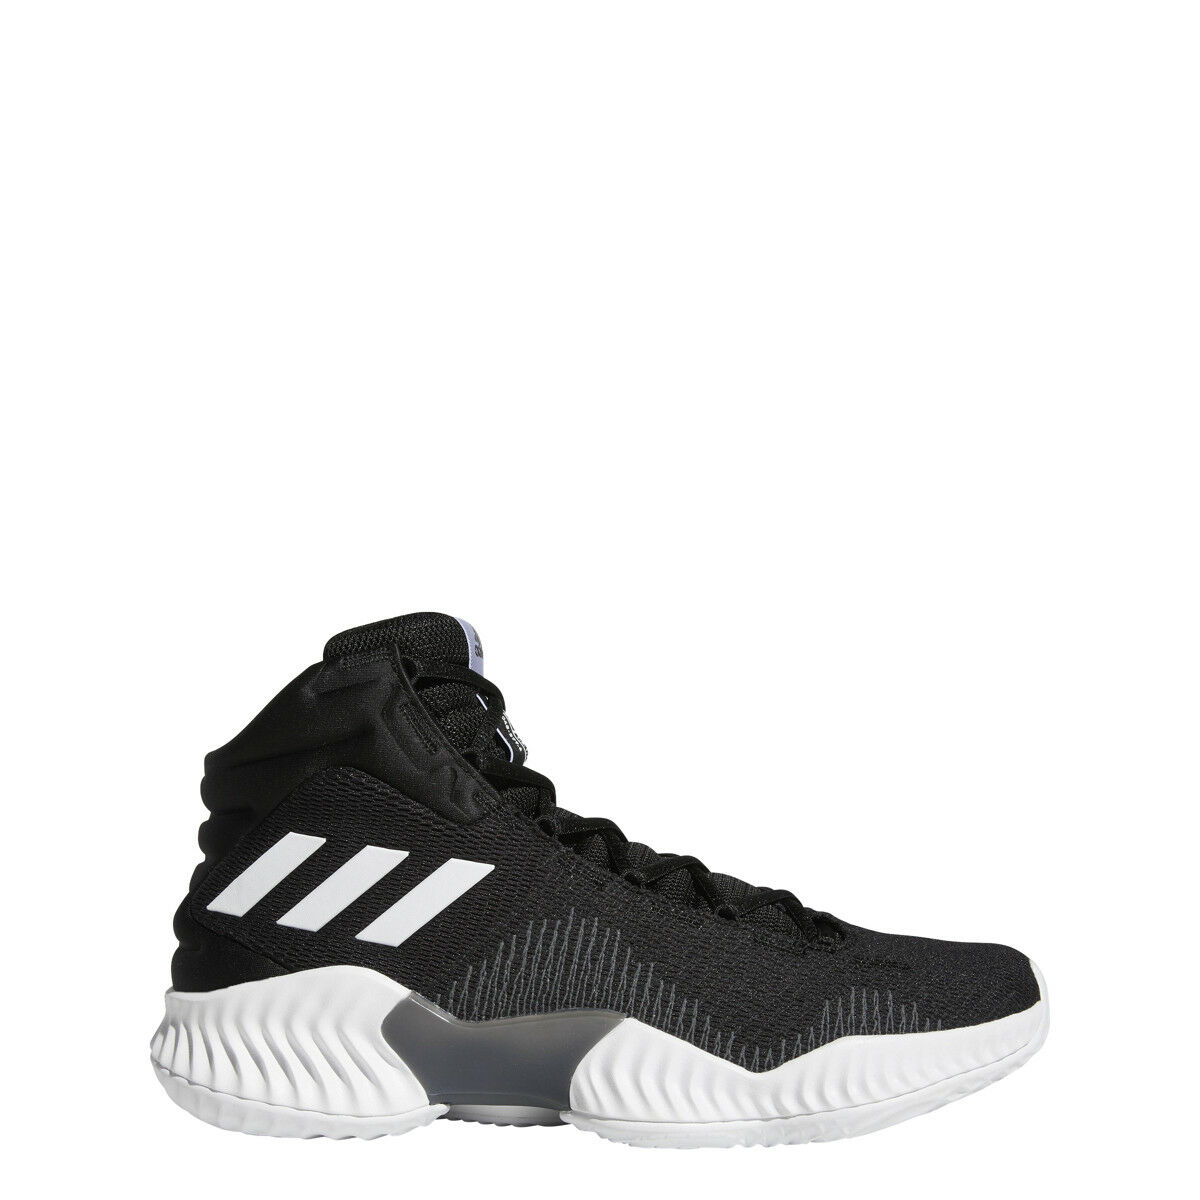 Adidas Men's Pro Bounce 2018 18 Mid Top Basketball shoes Bounce All colors Sizes